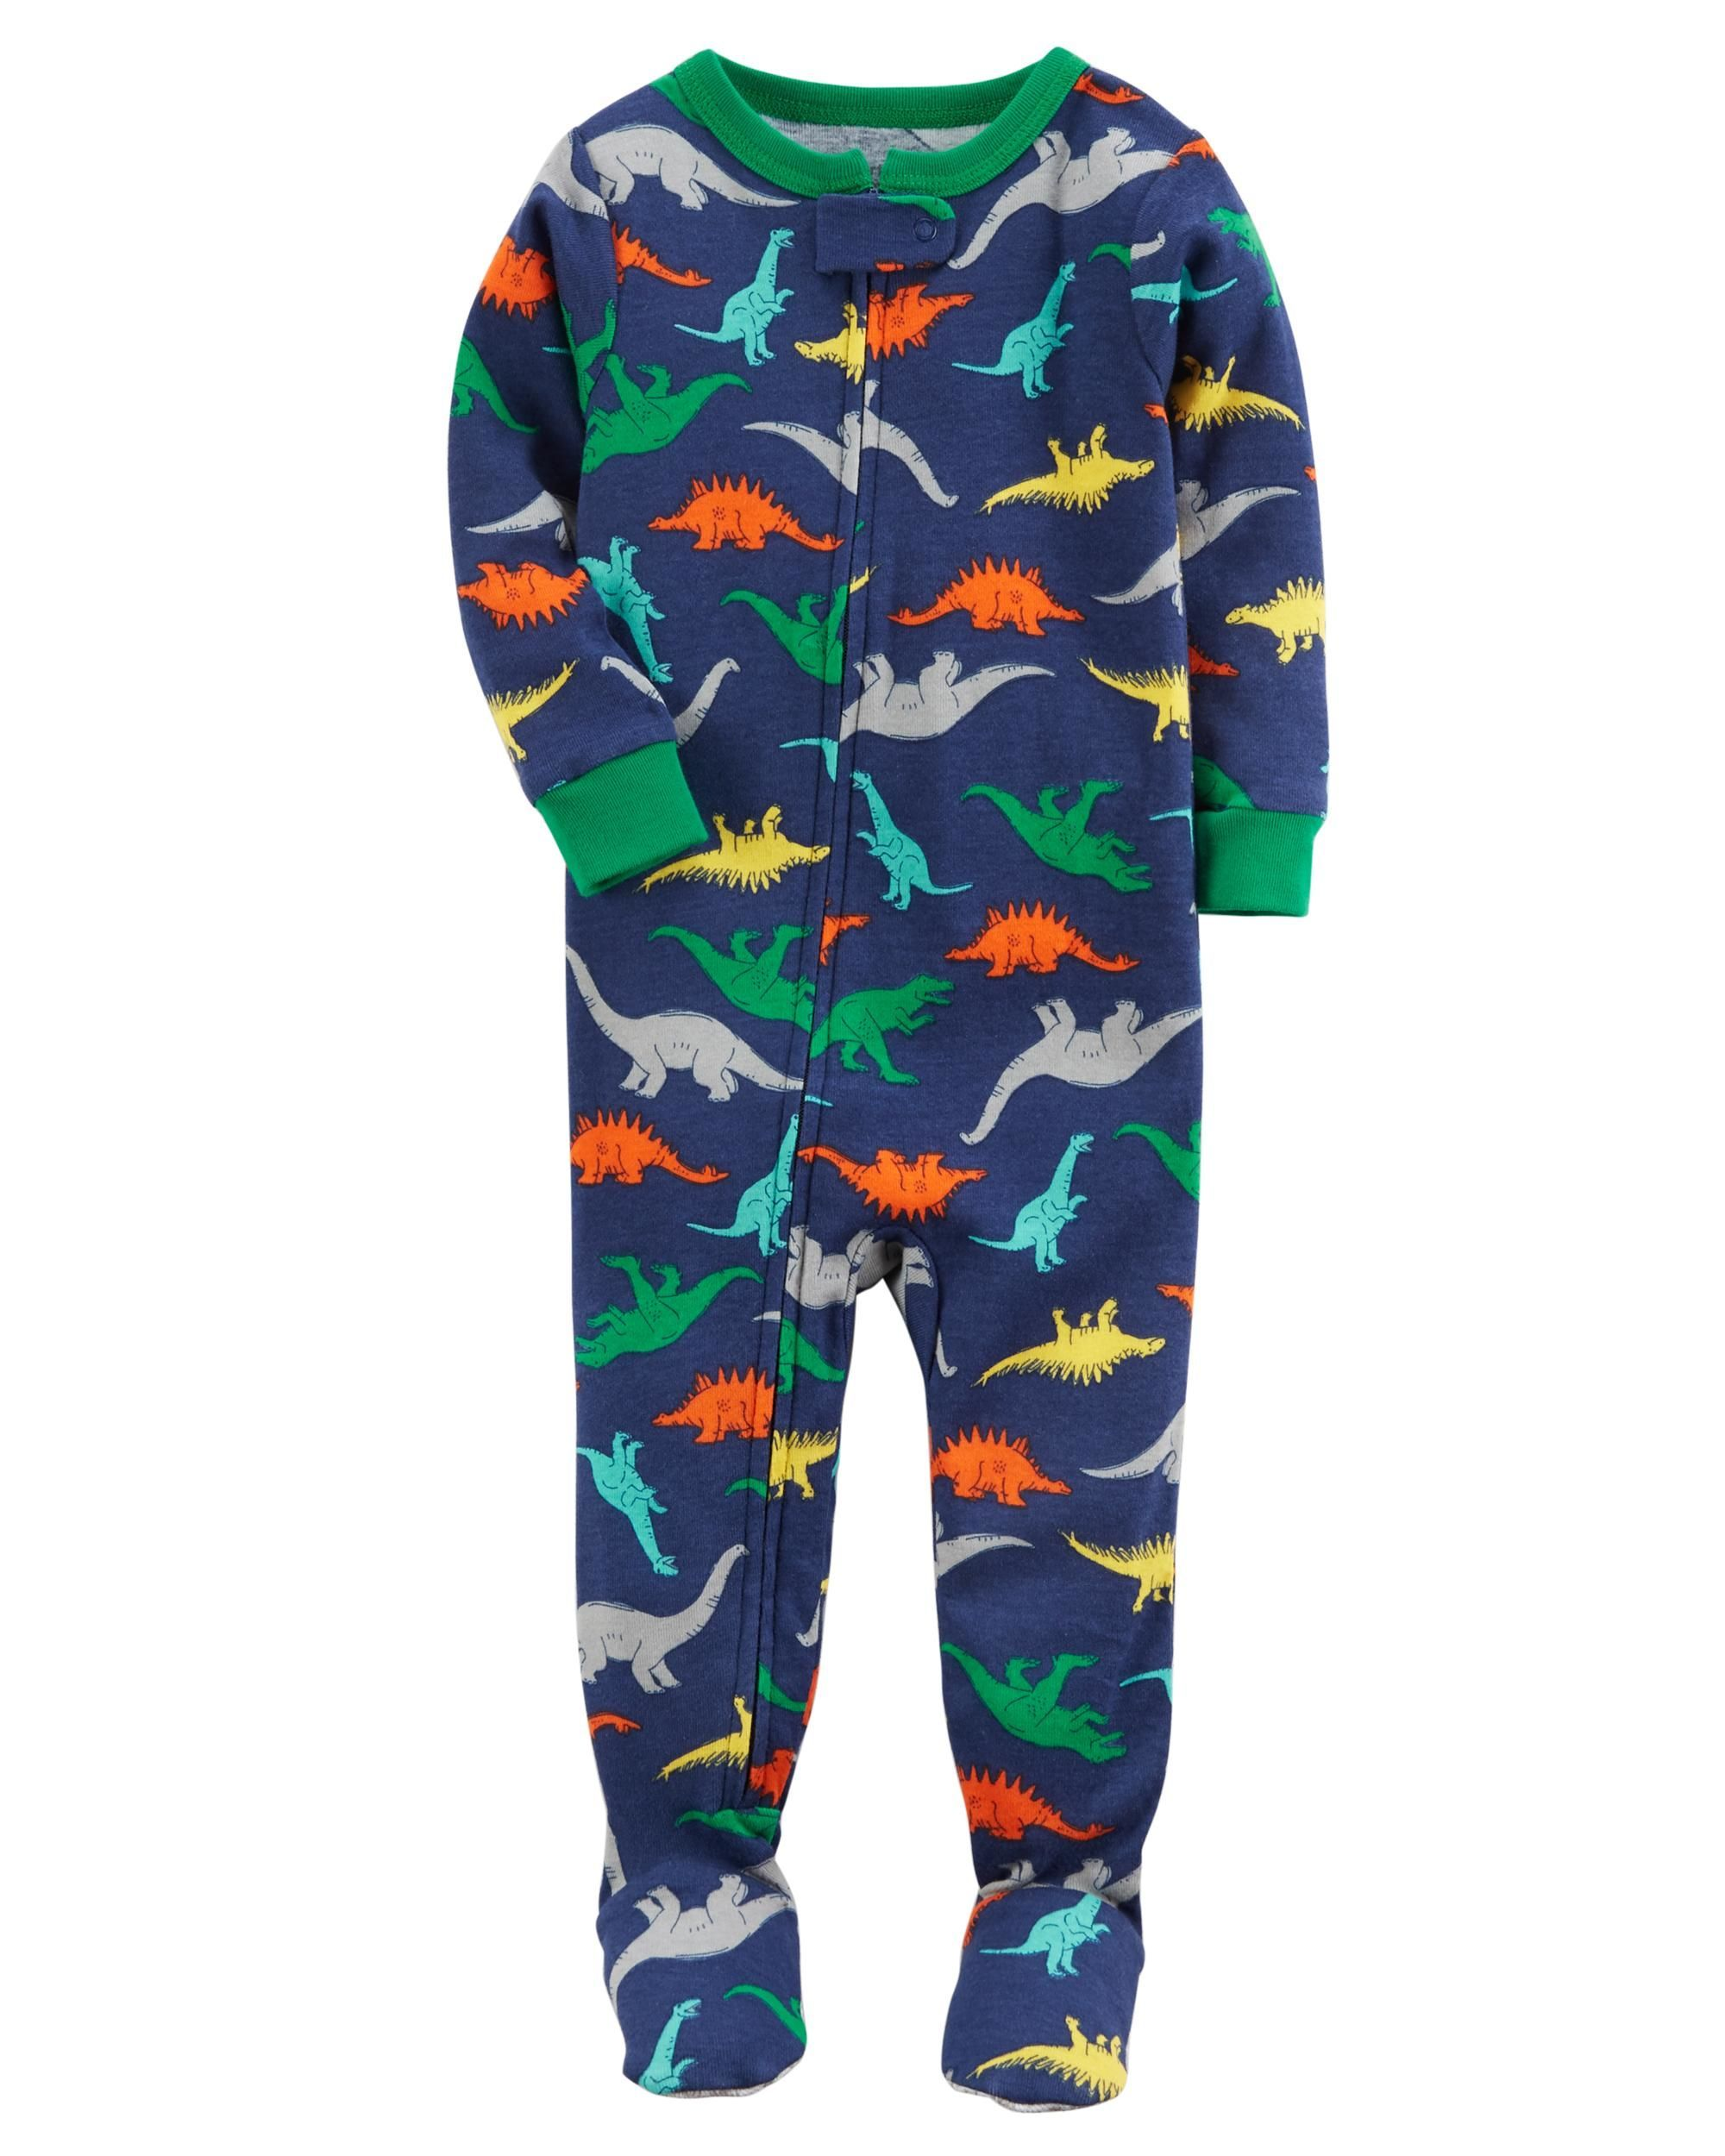 b05a7dbeb867 1-Piece Dinosaur Snug Fit Cotton PJs